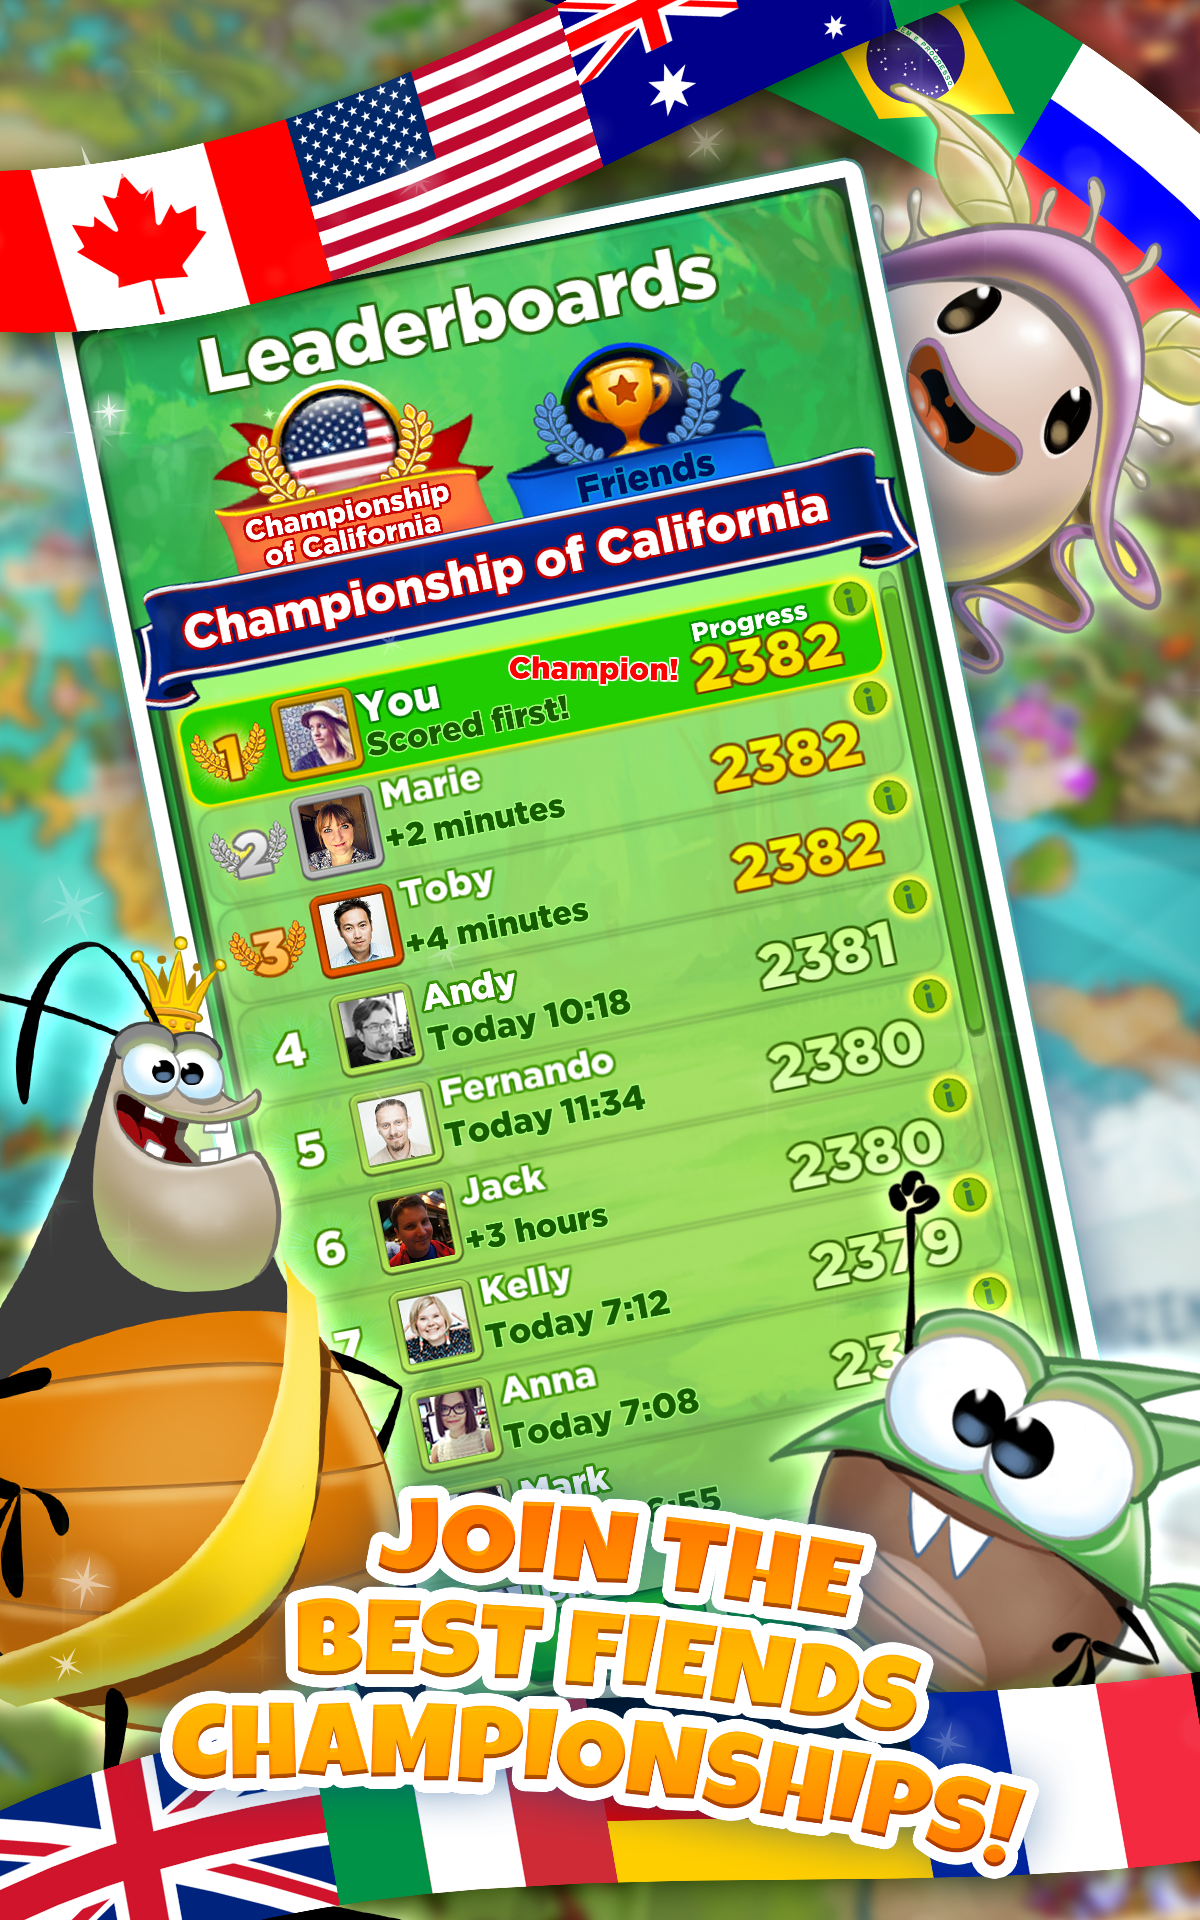 Pin by Victor Mogila on US_match3 in 2019 Best fiends